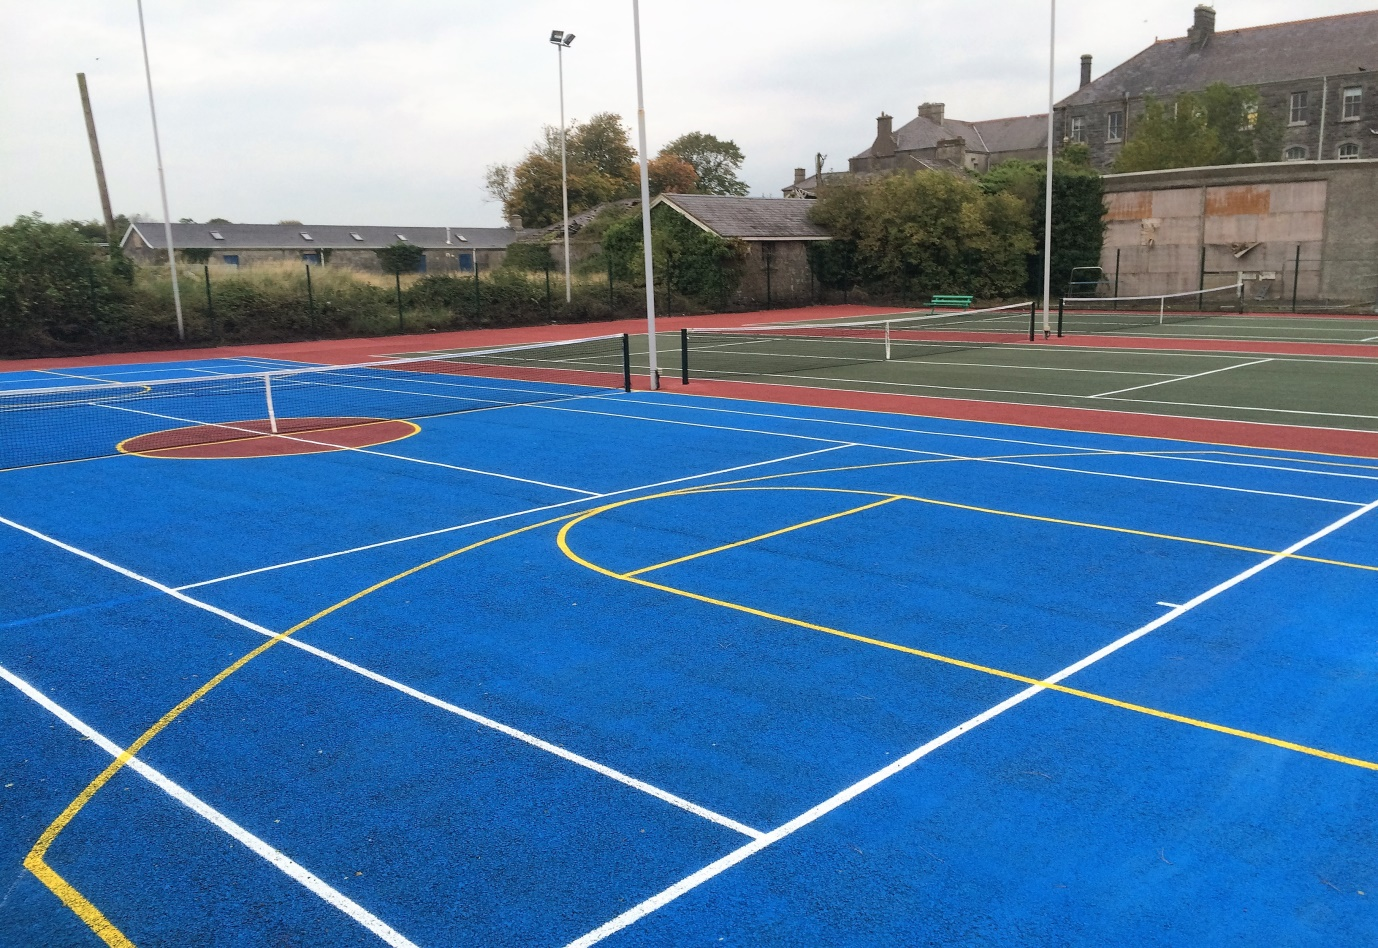 Court Painting Markings Courtcare Ireland Ltd